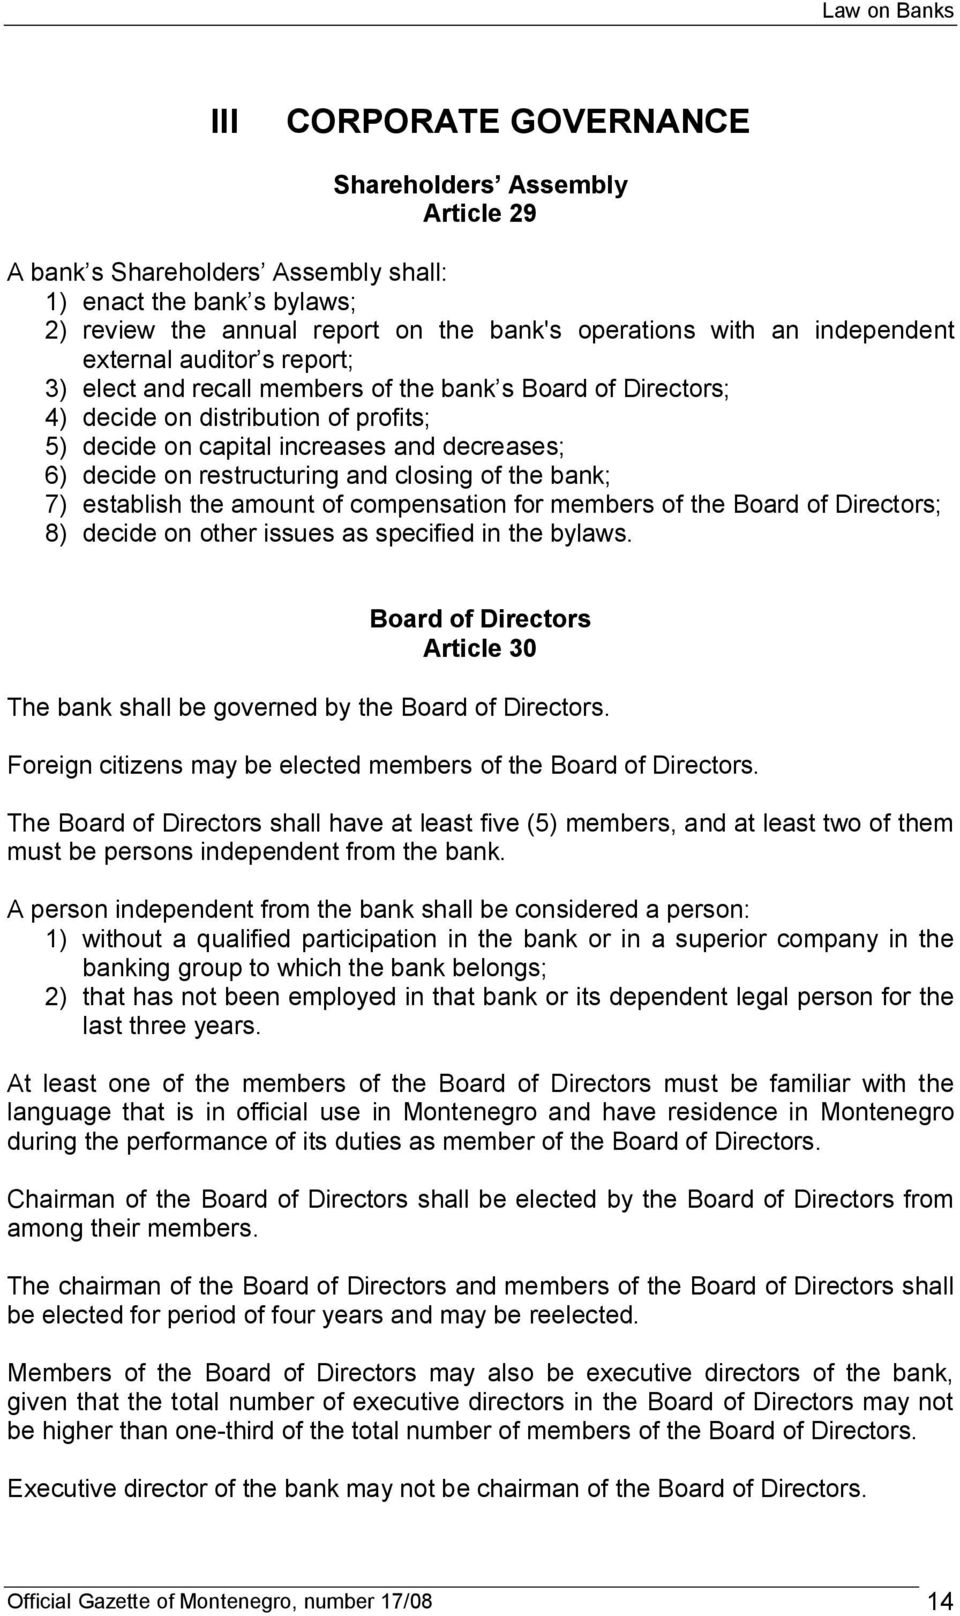 and closing of the bank; 7) establish the amount of compensation for members of the Board of Directors; 8) decide on other issues as specified in the bylaws.